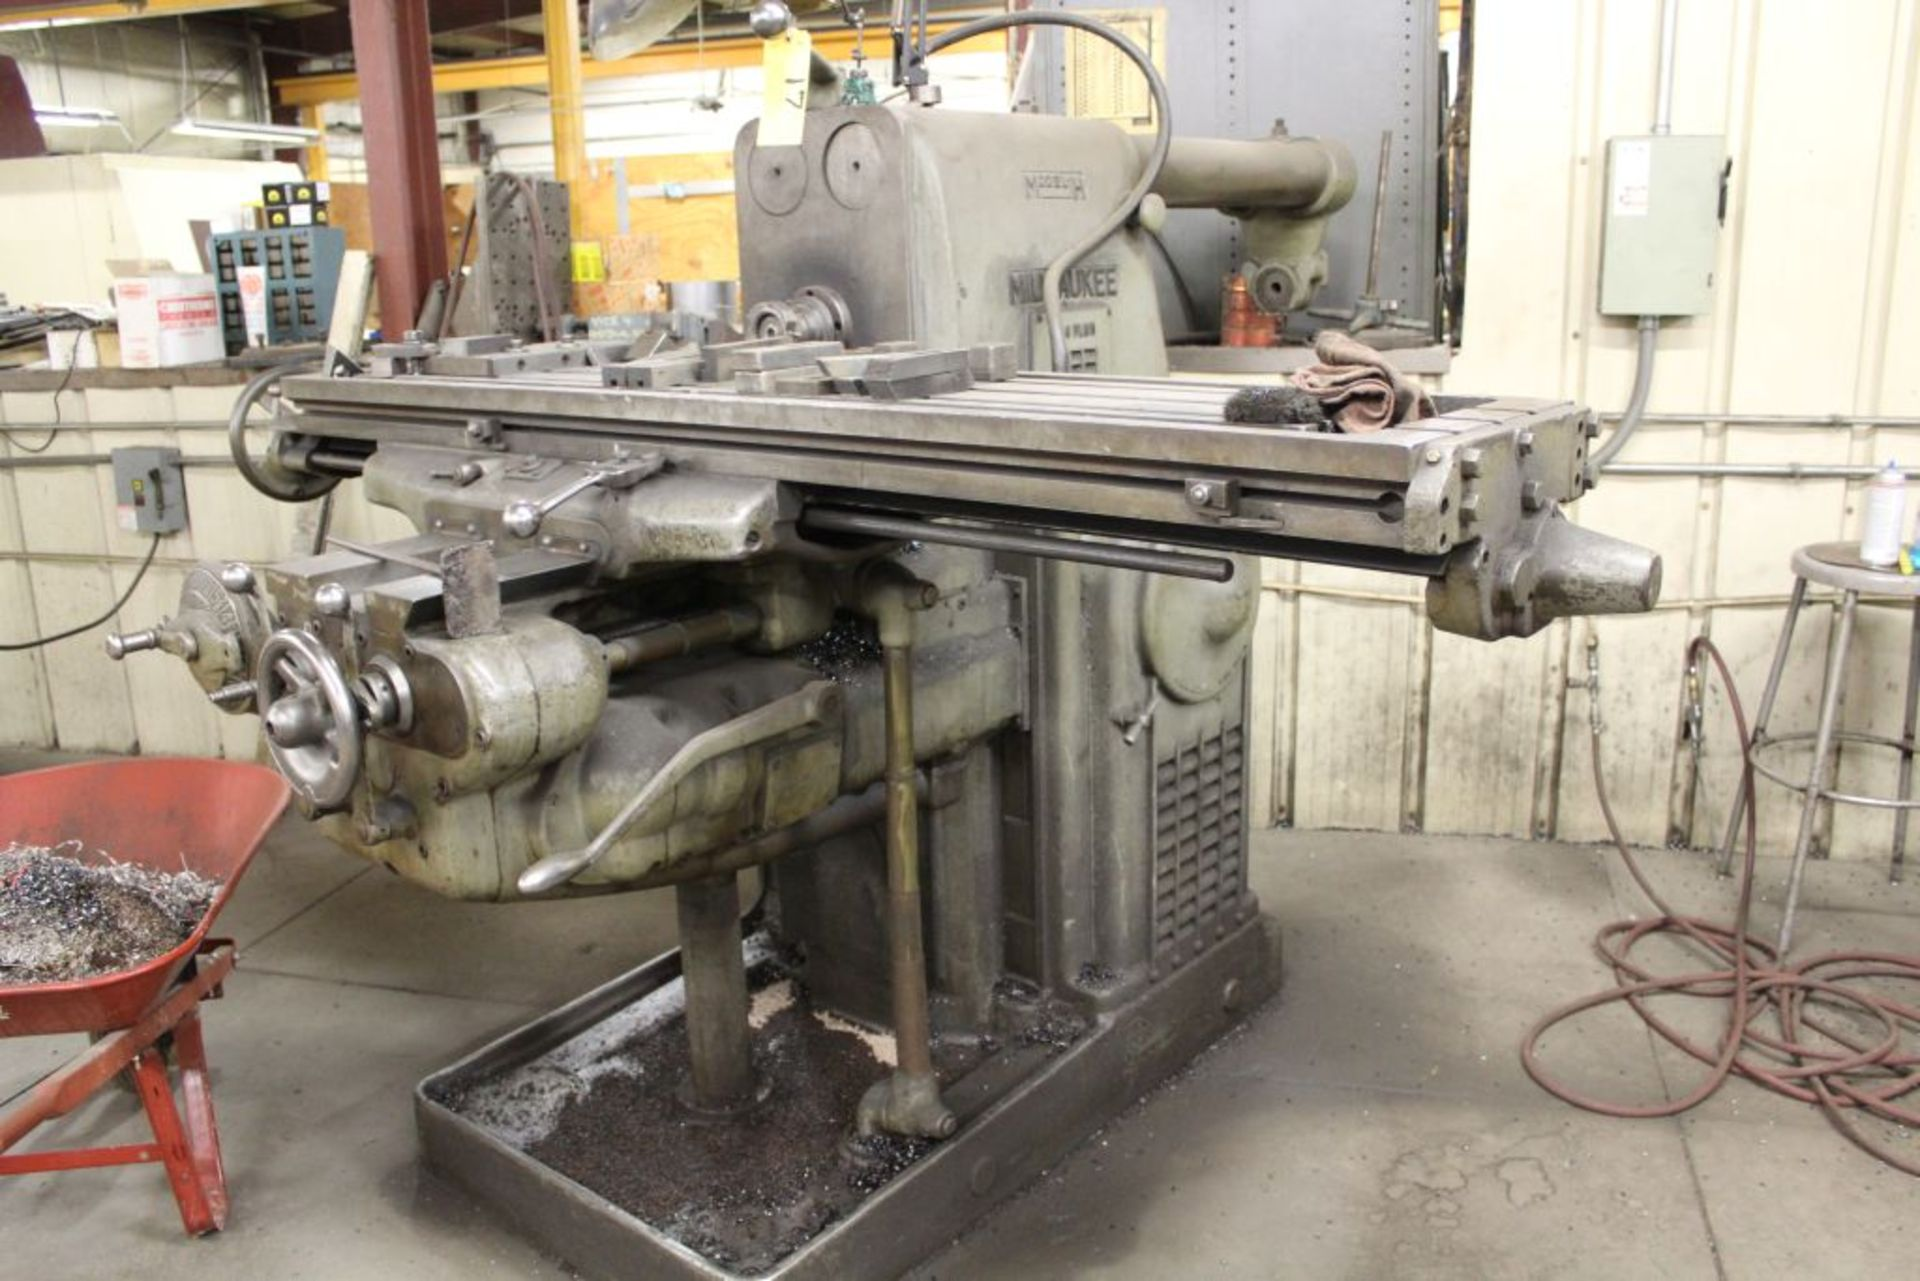 """Lot 017 - K & T horizontal #3 milling machine, No . 4 plain, model H, sn 14-3709, 48"""". Sells with owners"""